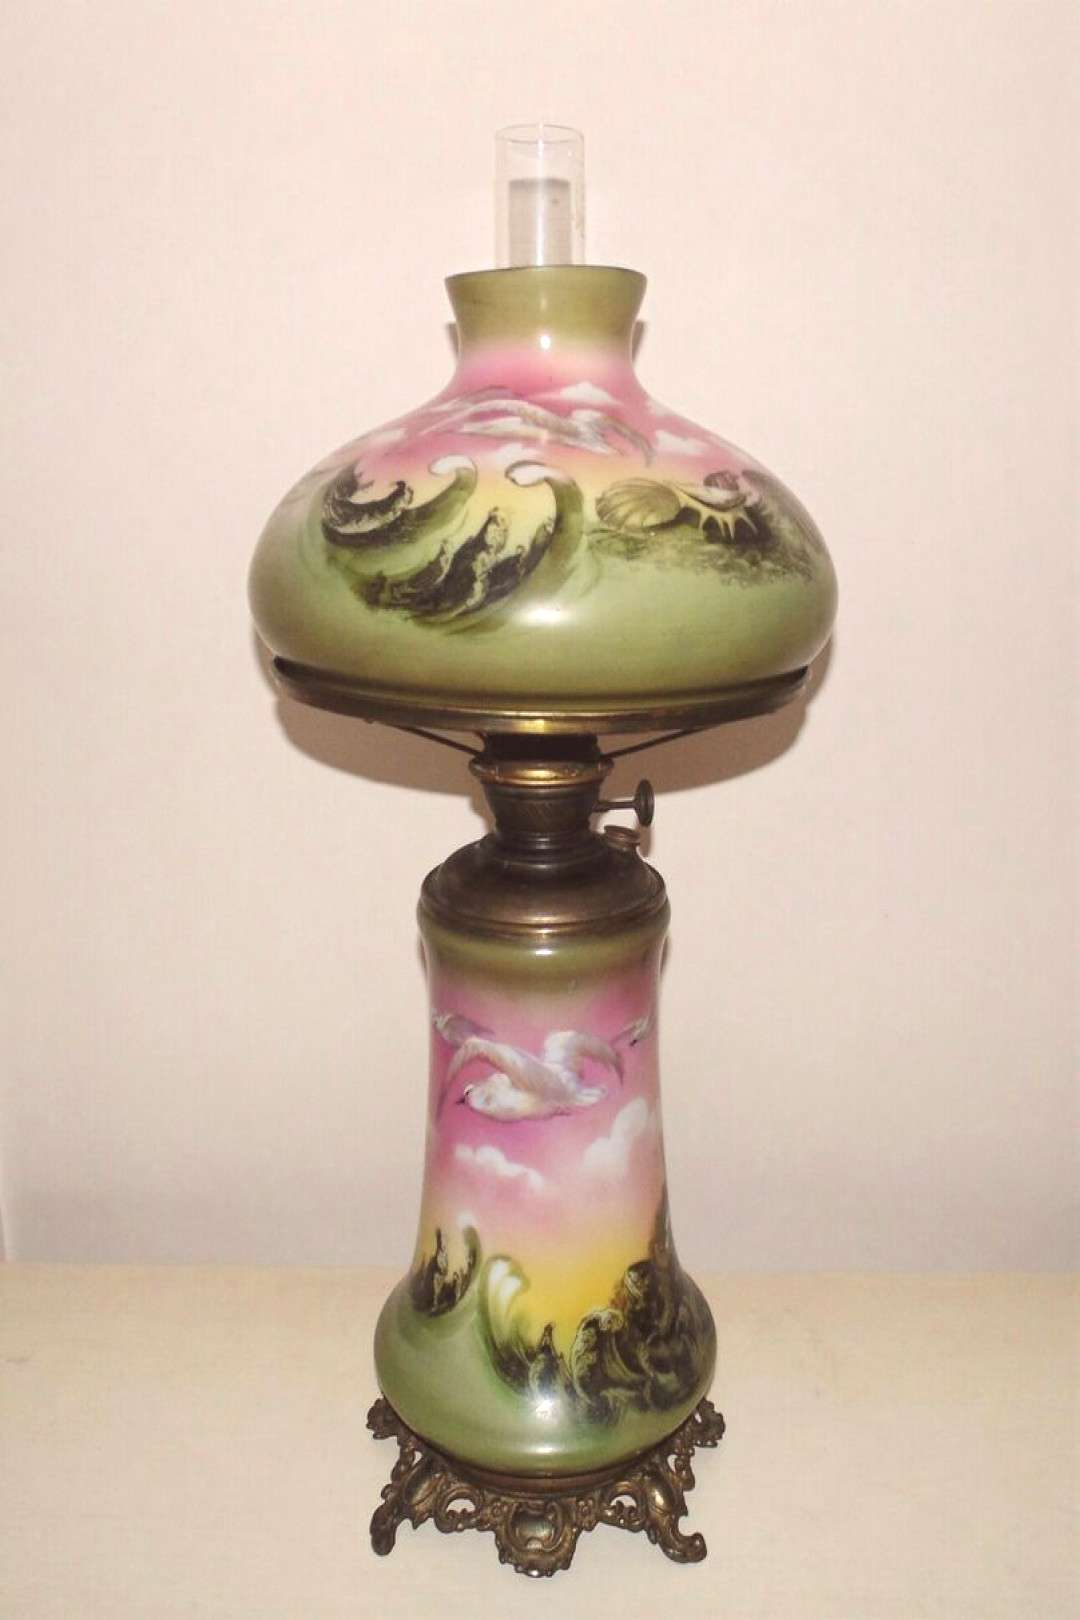 RARE Seagull Mermaid Banquet Lamp Oil / Kerosene Pittsburgh Gone with the Wind